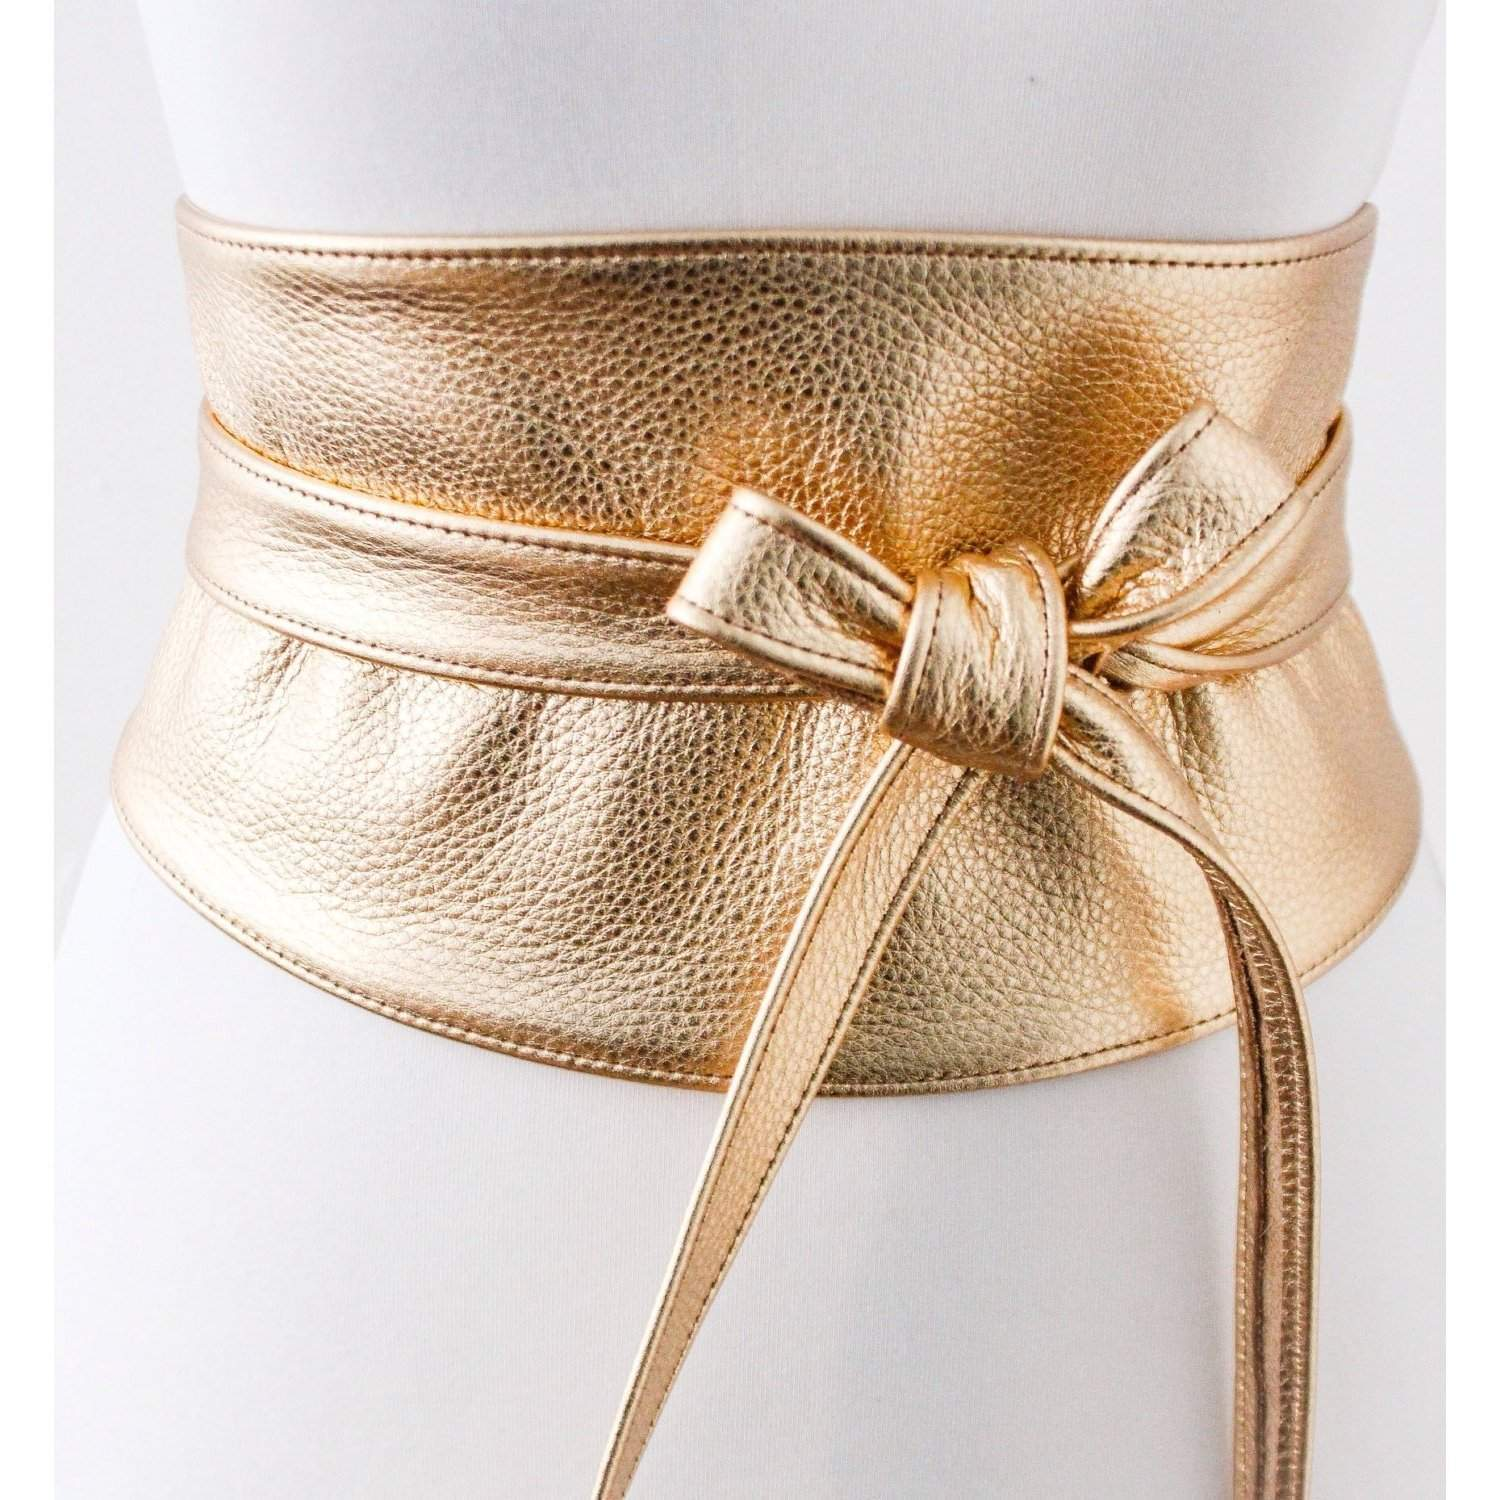 Gold Wide Leather Obi Belt | Wide corset waist Belt | Leather corset belt | Real Leather wrap Belt | Gold Waist Belt | Petite to Plus Size - loveyaayaa